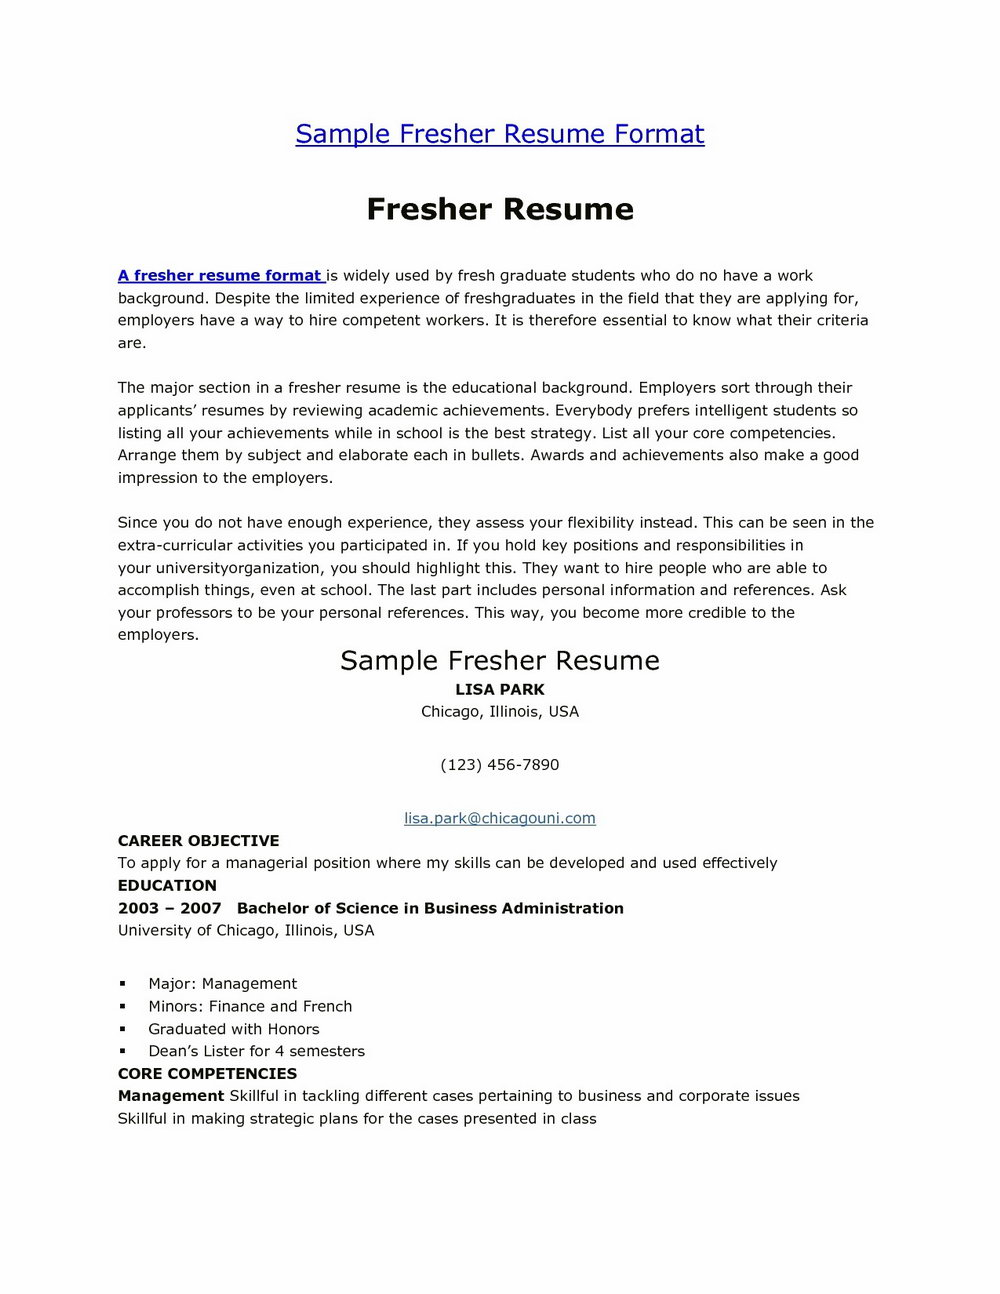 Resume Format For Freshers Free Download Latest Pdf